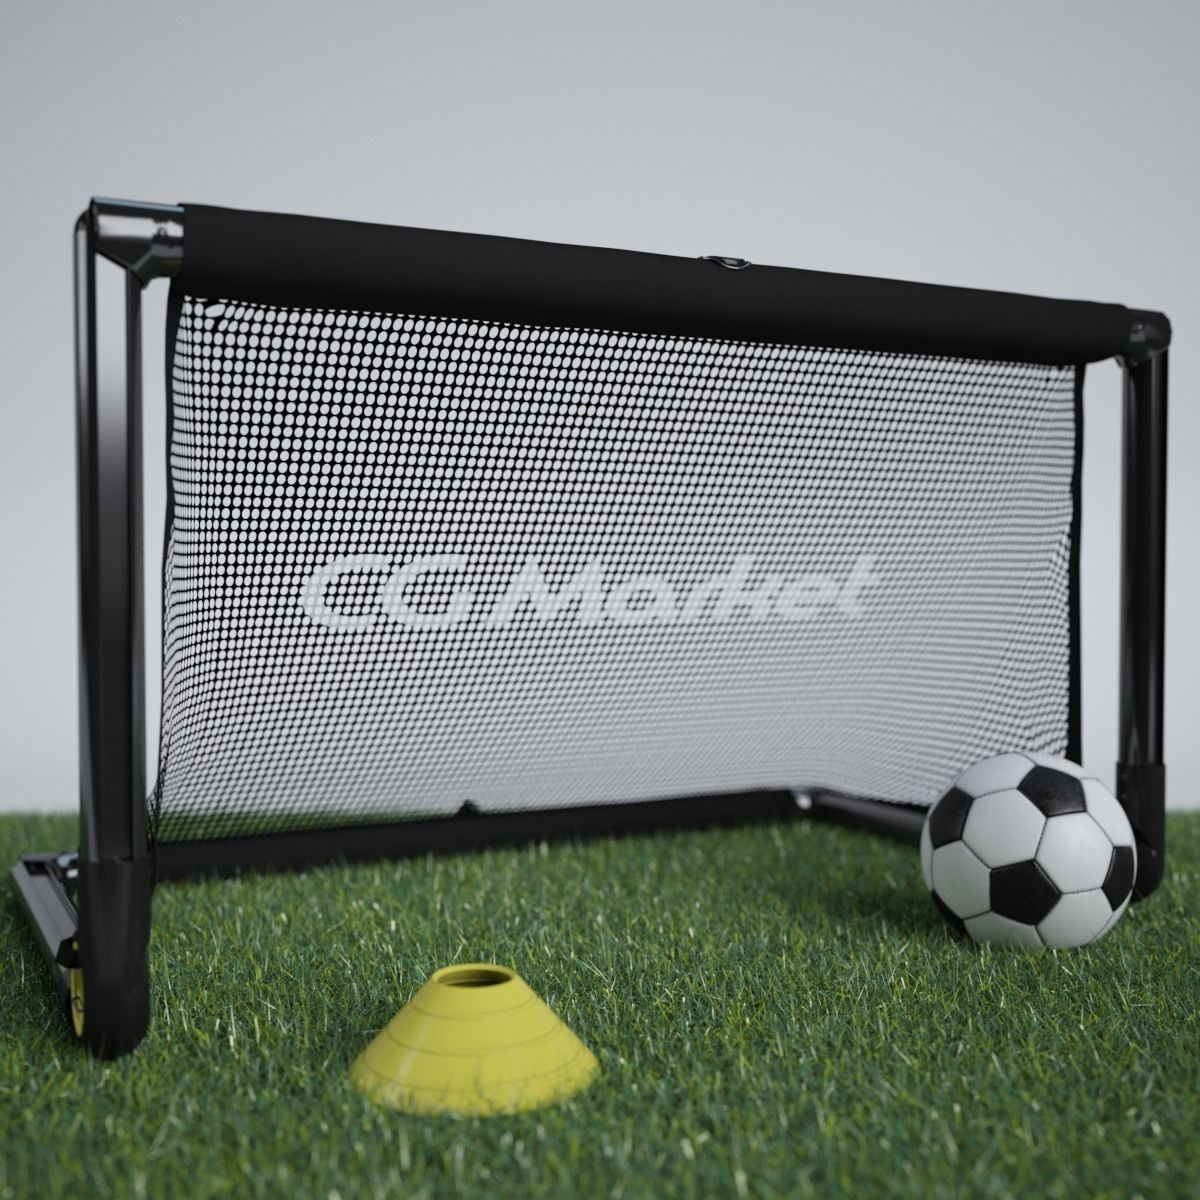 Portable Soccer Goal And Soccer Ball With Training Cone 3d